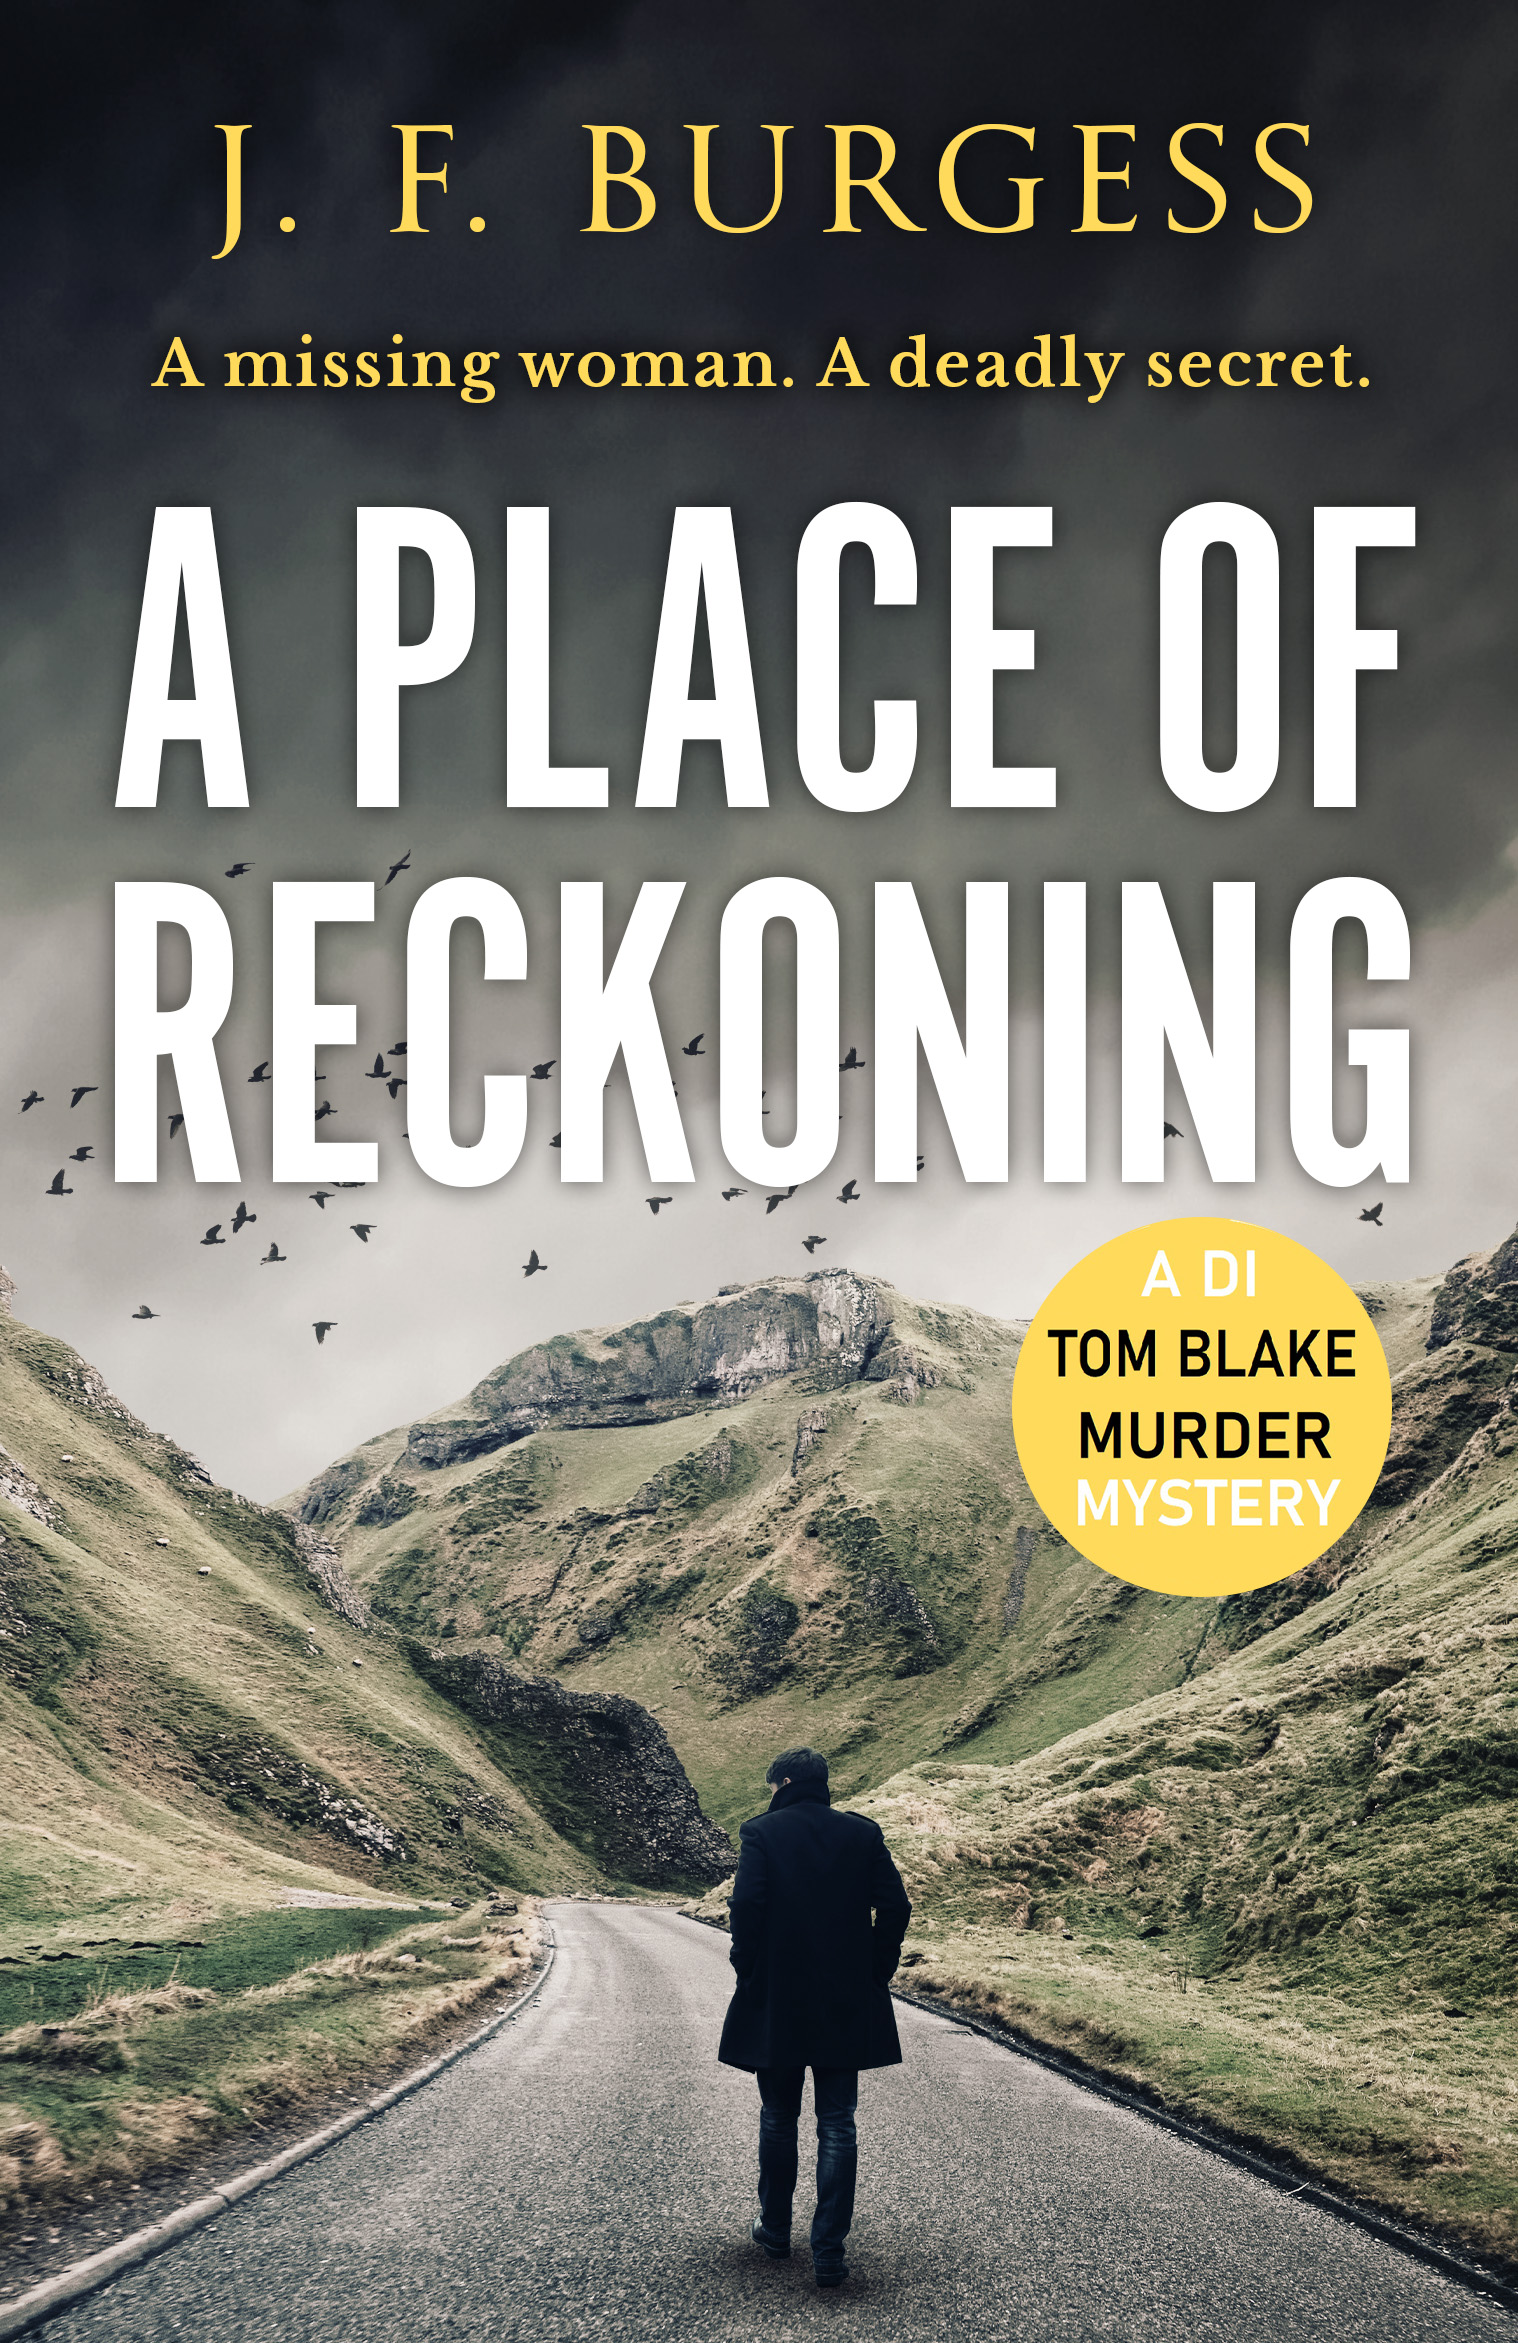 [PDF] [EPUB] A Place of Reckoning: A chilling psychological murder mystery full of suspense and deadly twists (Detective Tom Blake book 2) Download by J.F. Burgess